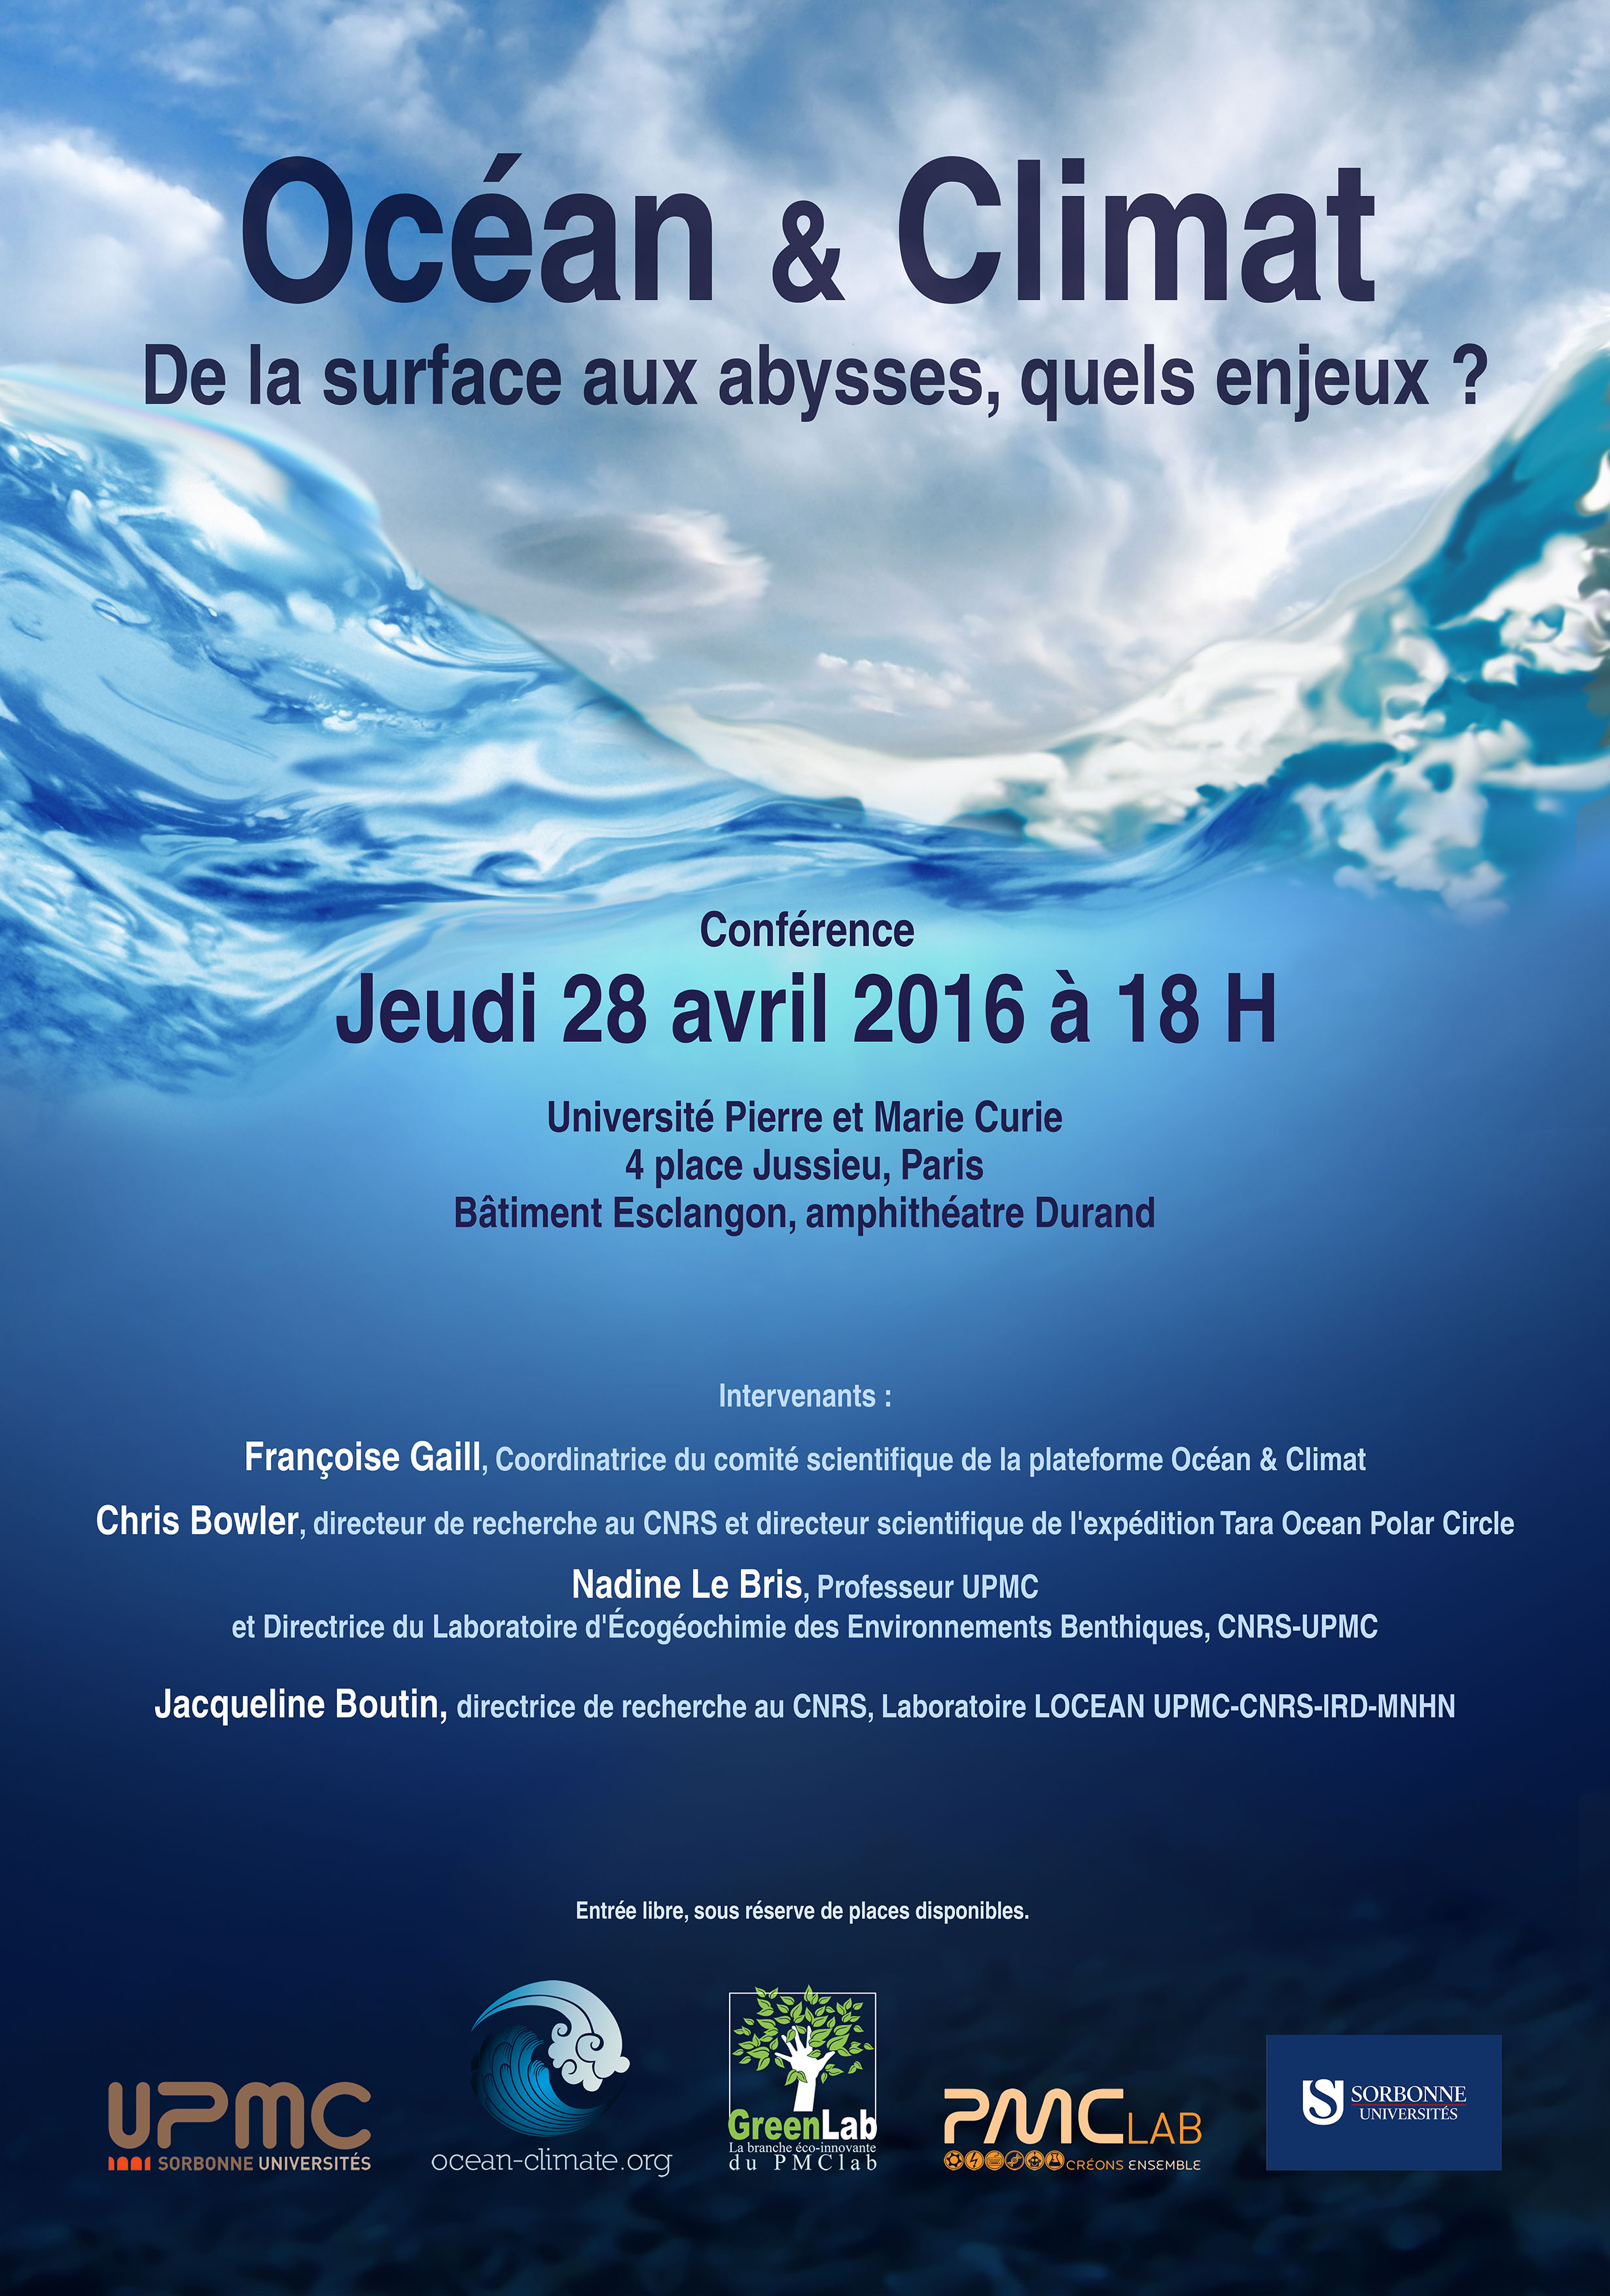 Conference Greenlab OceanClimat